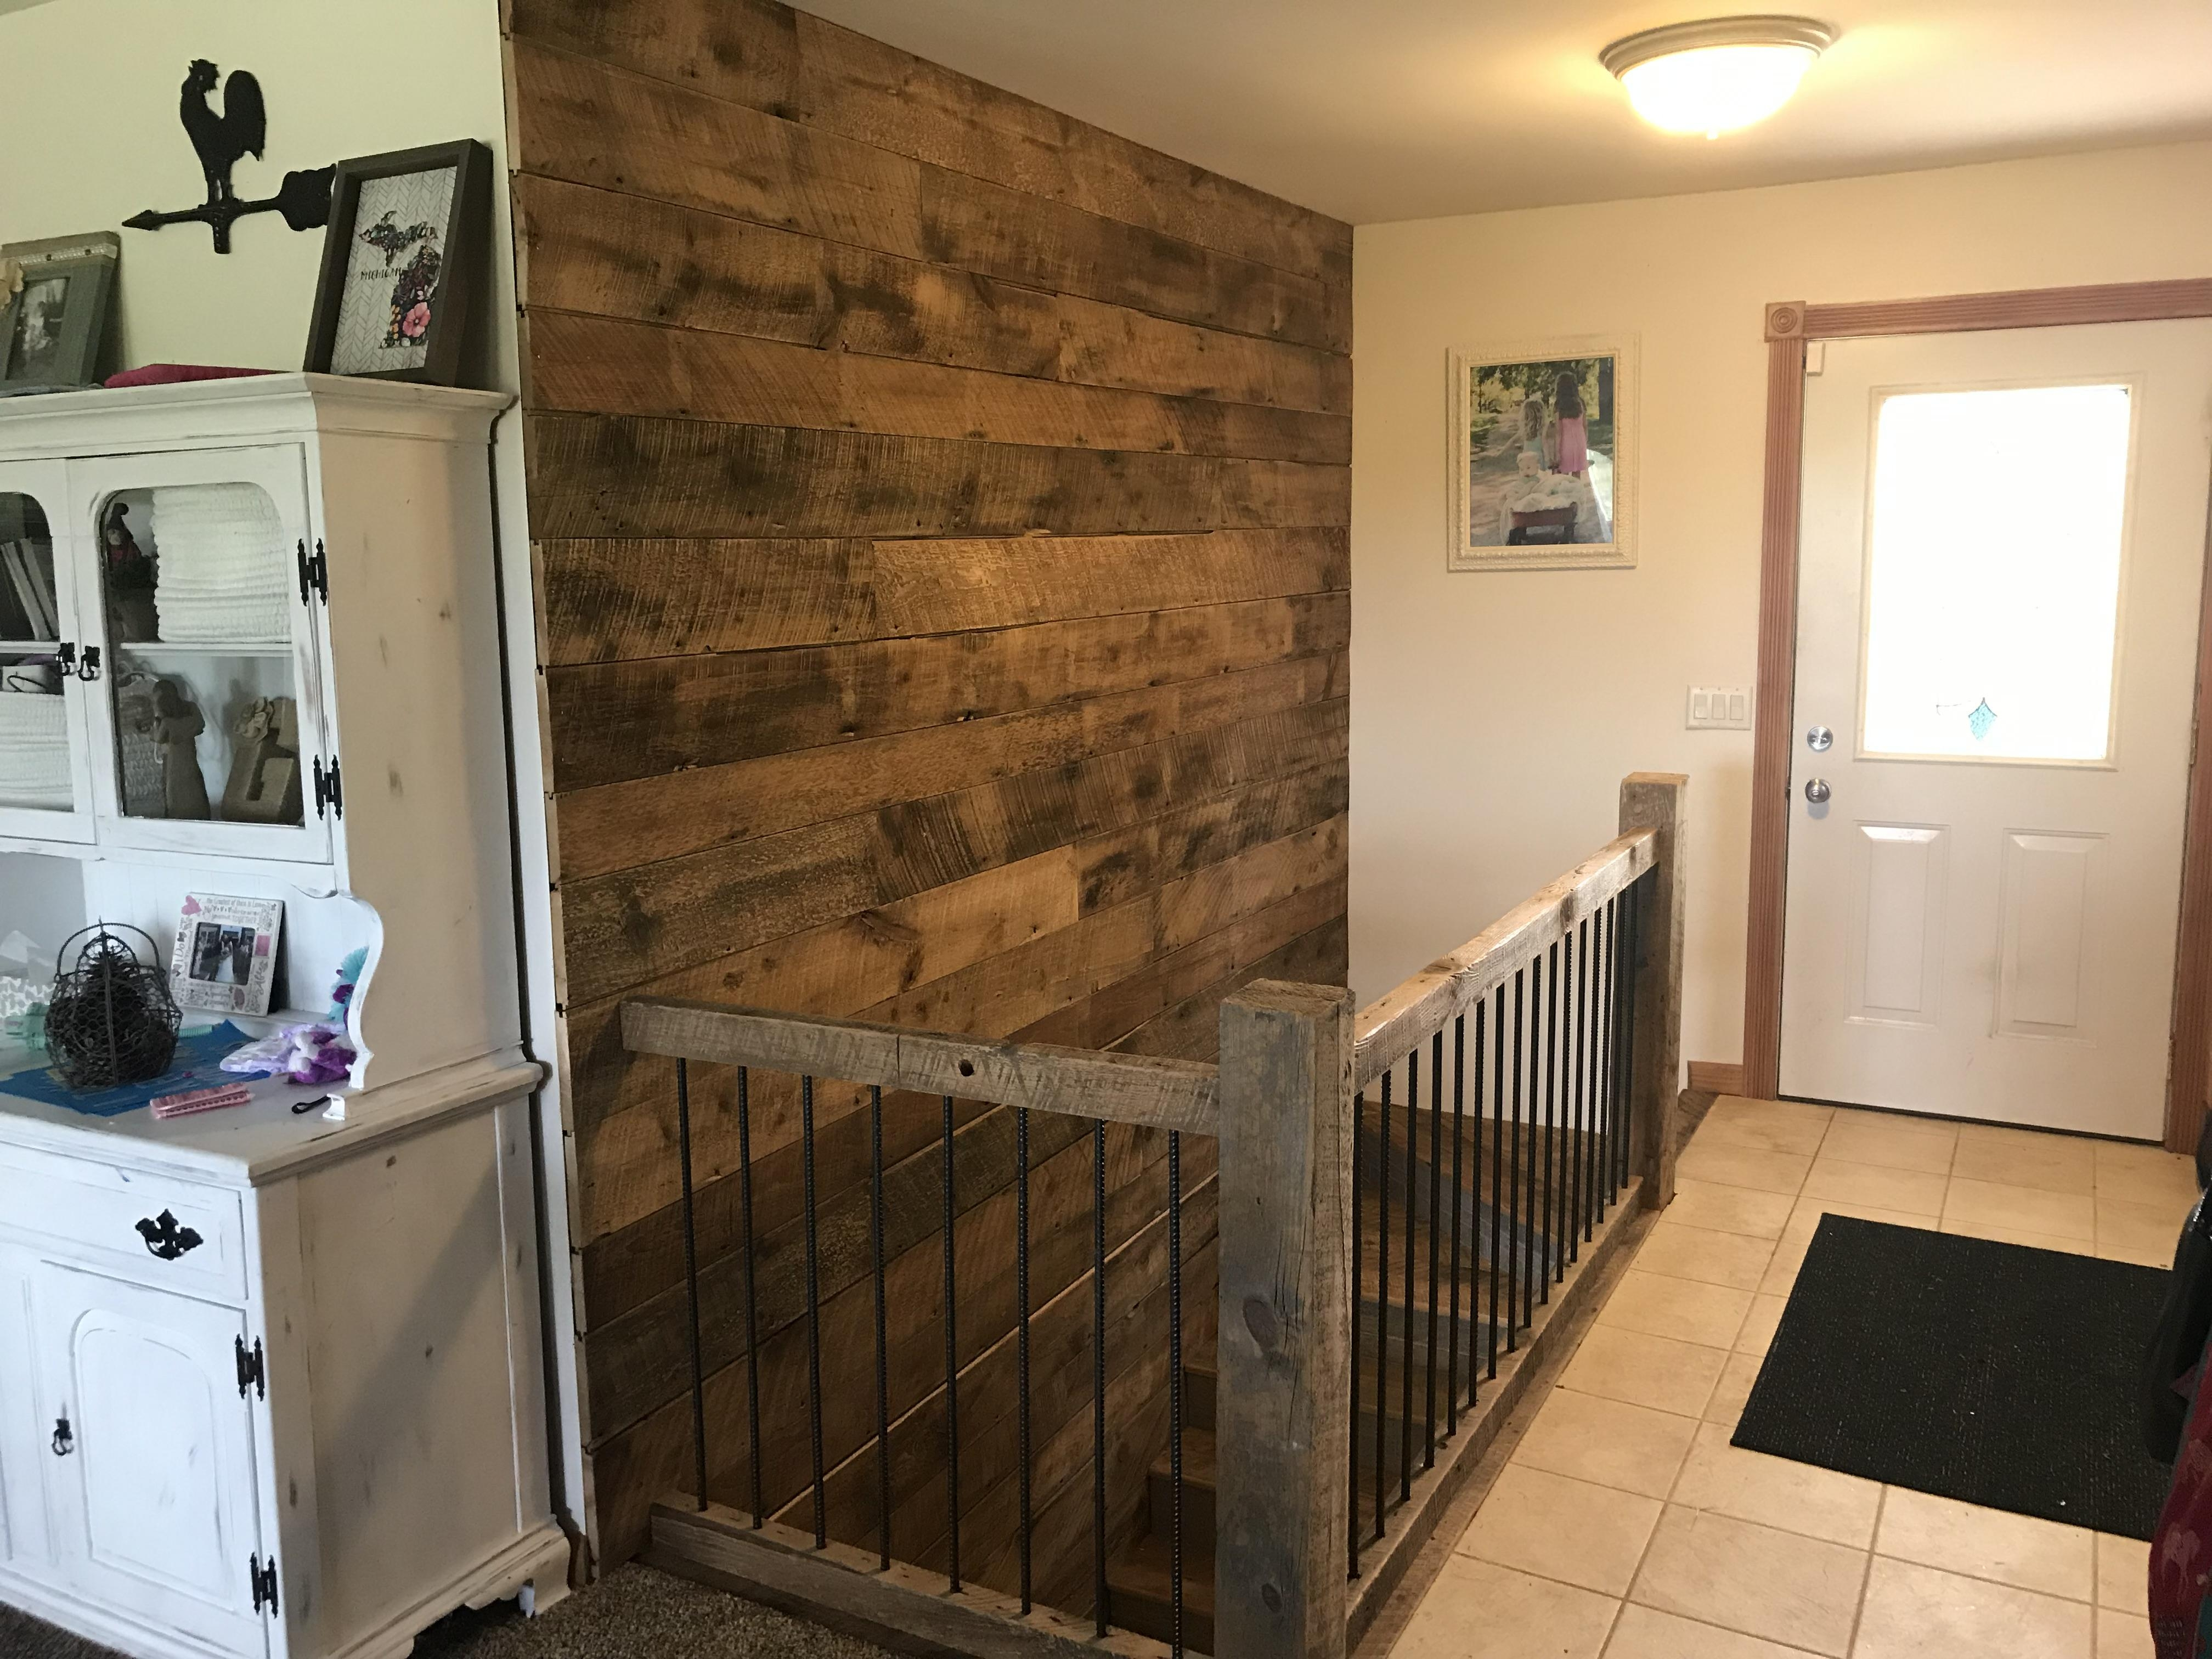 Rustic Stair Railing With Barn Wood Accent Wall More Pics In   Rustic Stairs And Railings   Handrail   Custom   Design   Cabin   Interior